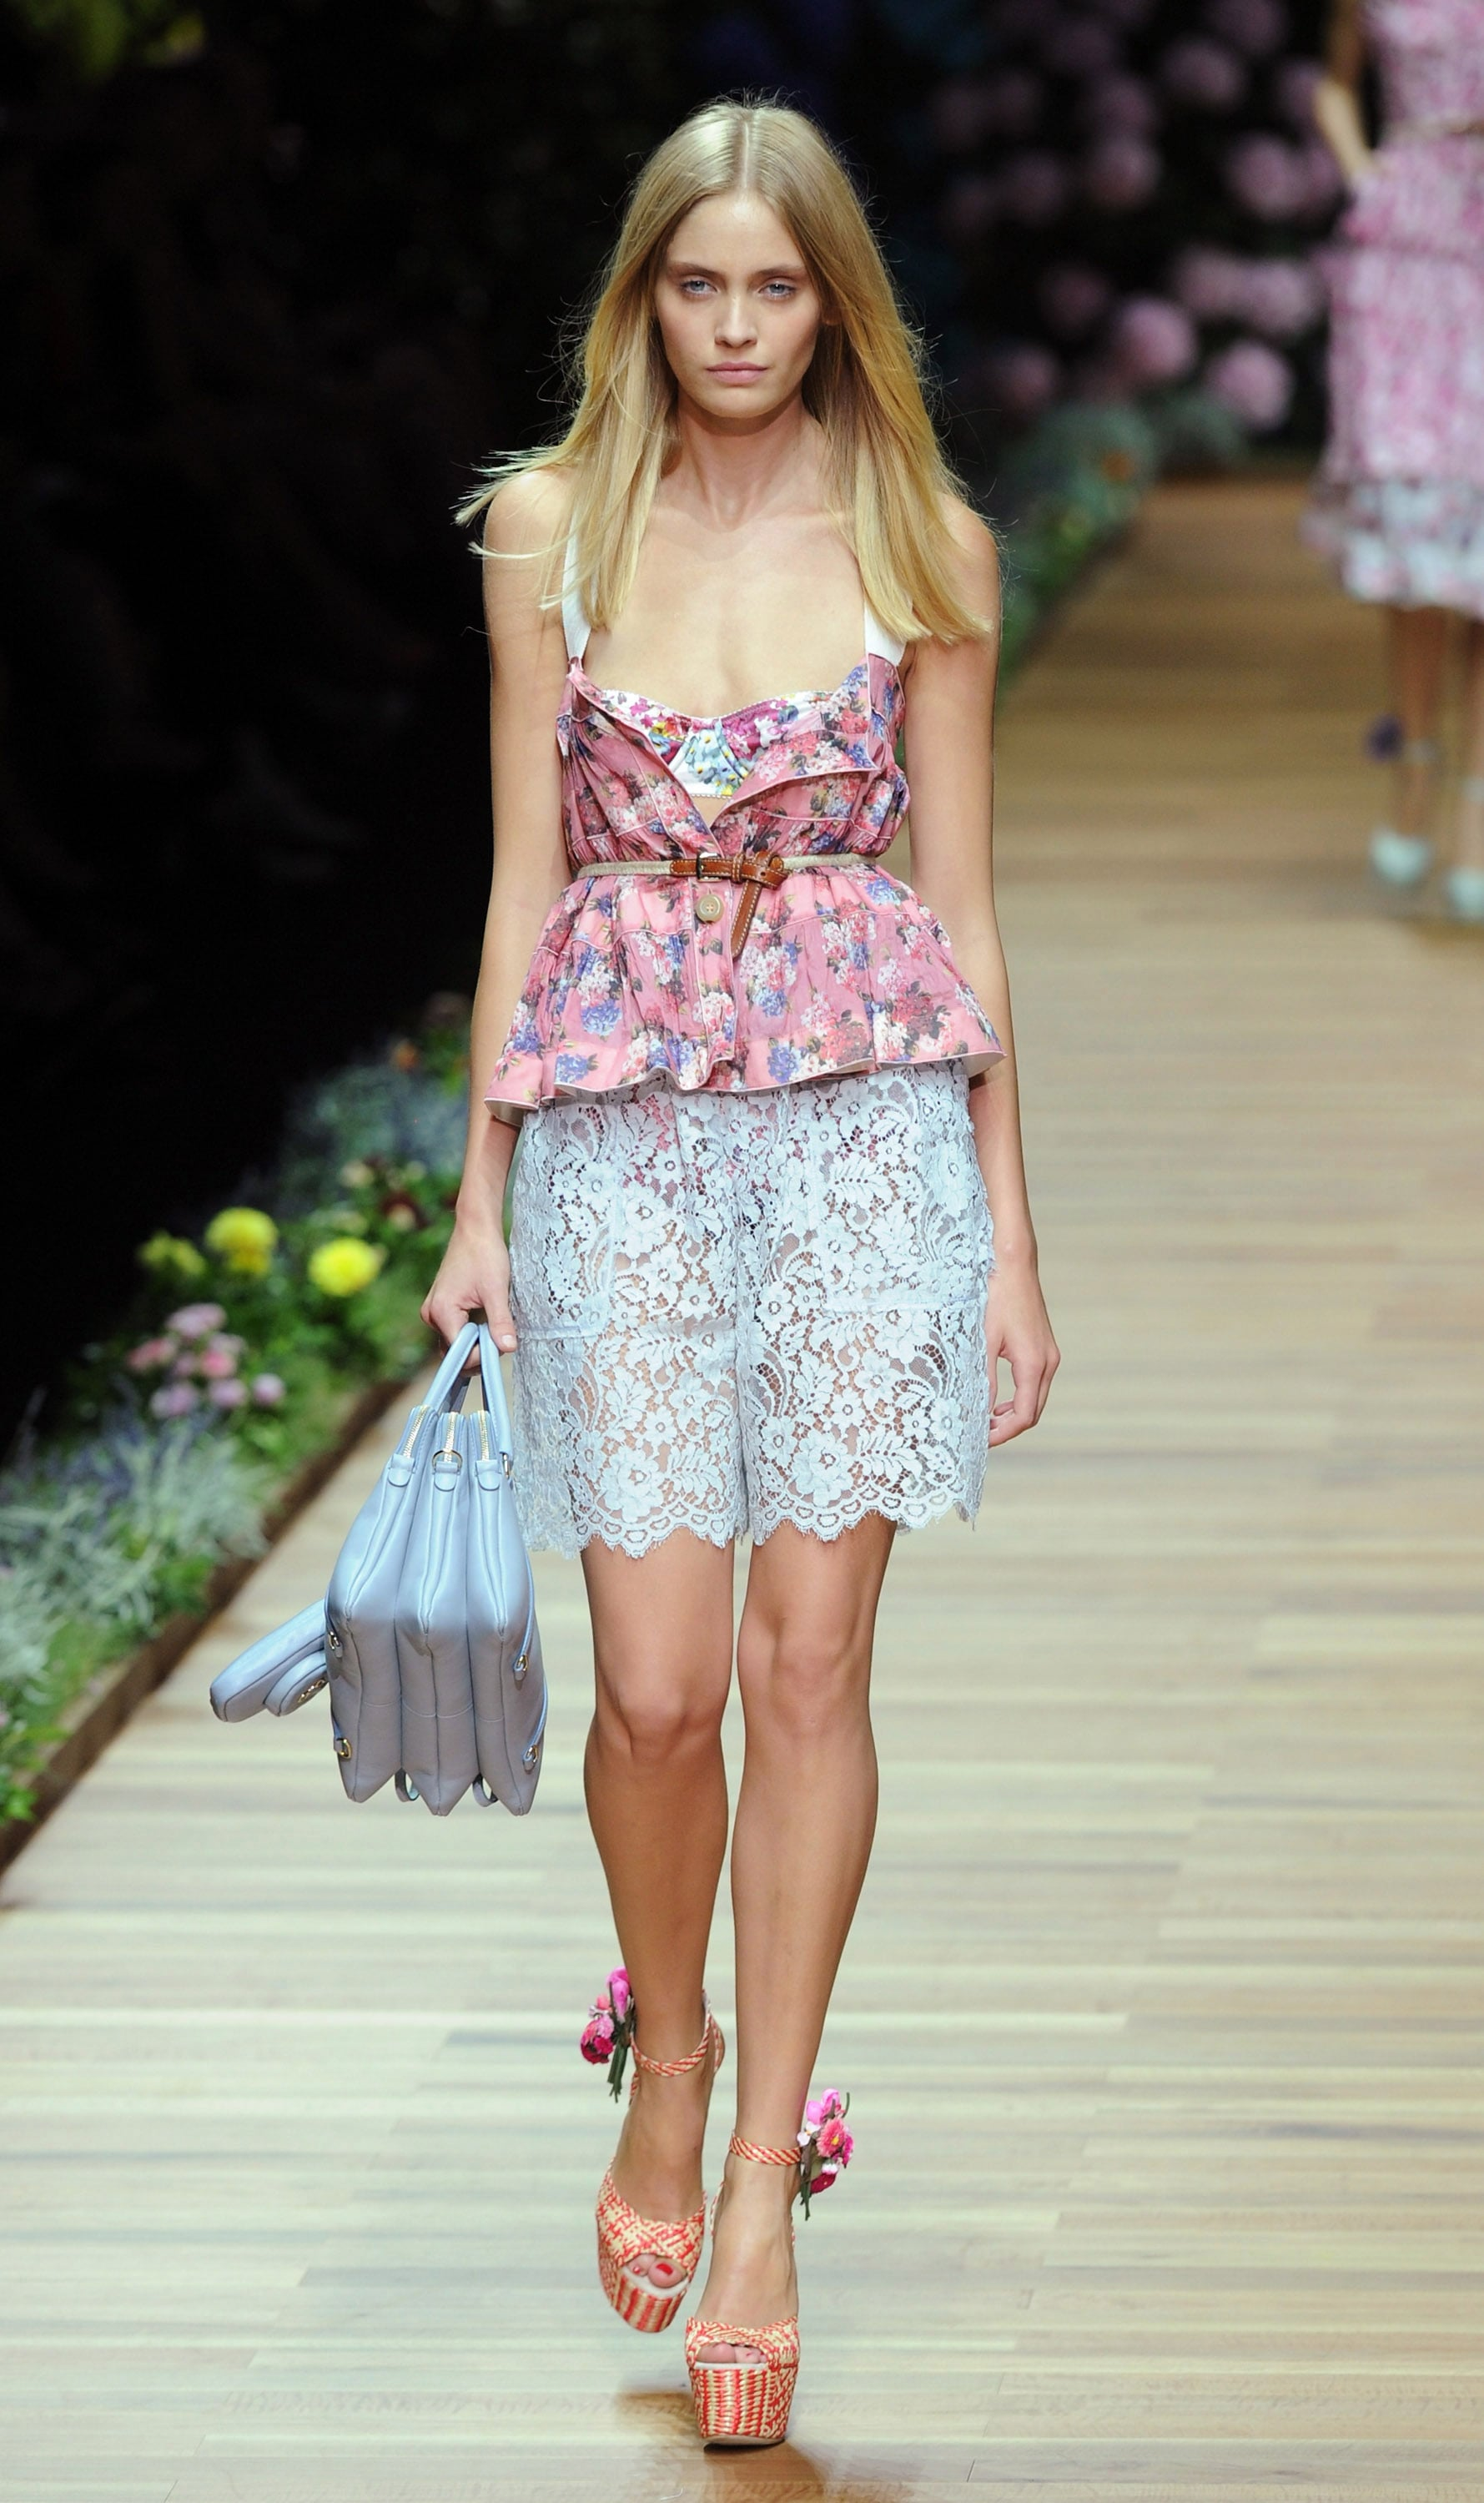 Spring 2011 Milan Fashion Week: D&G 2010-09-23 14:30:05 ...